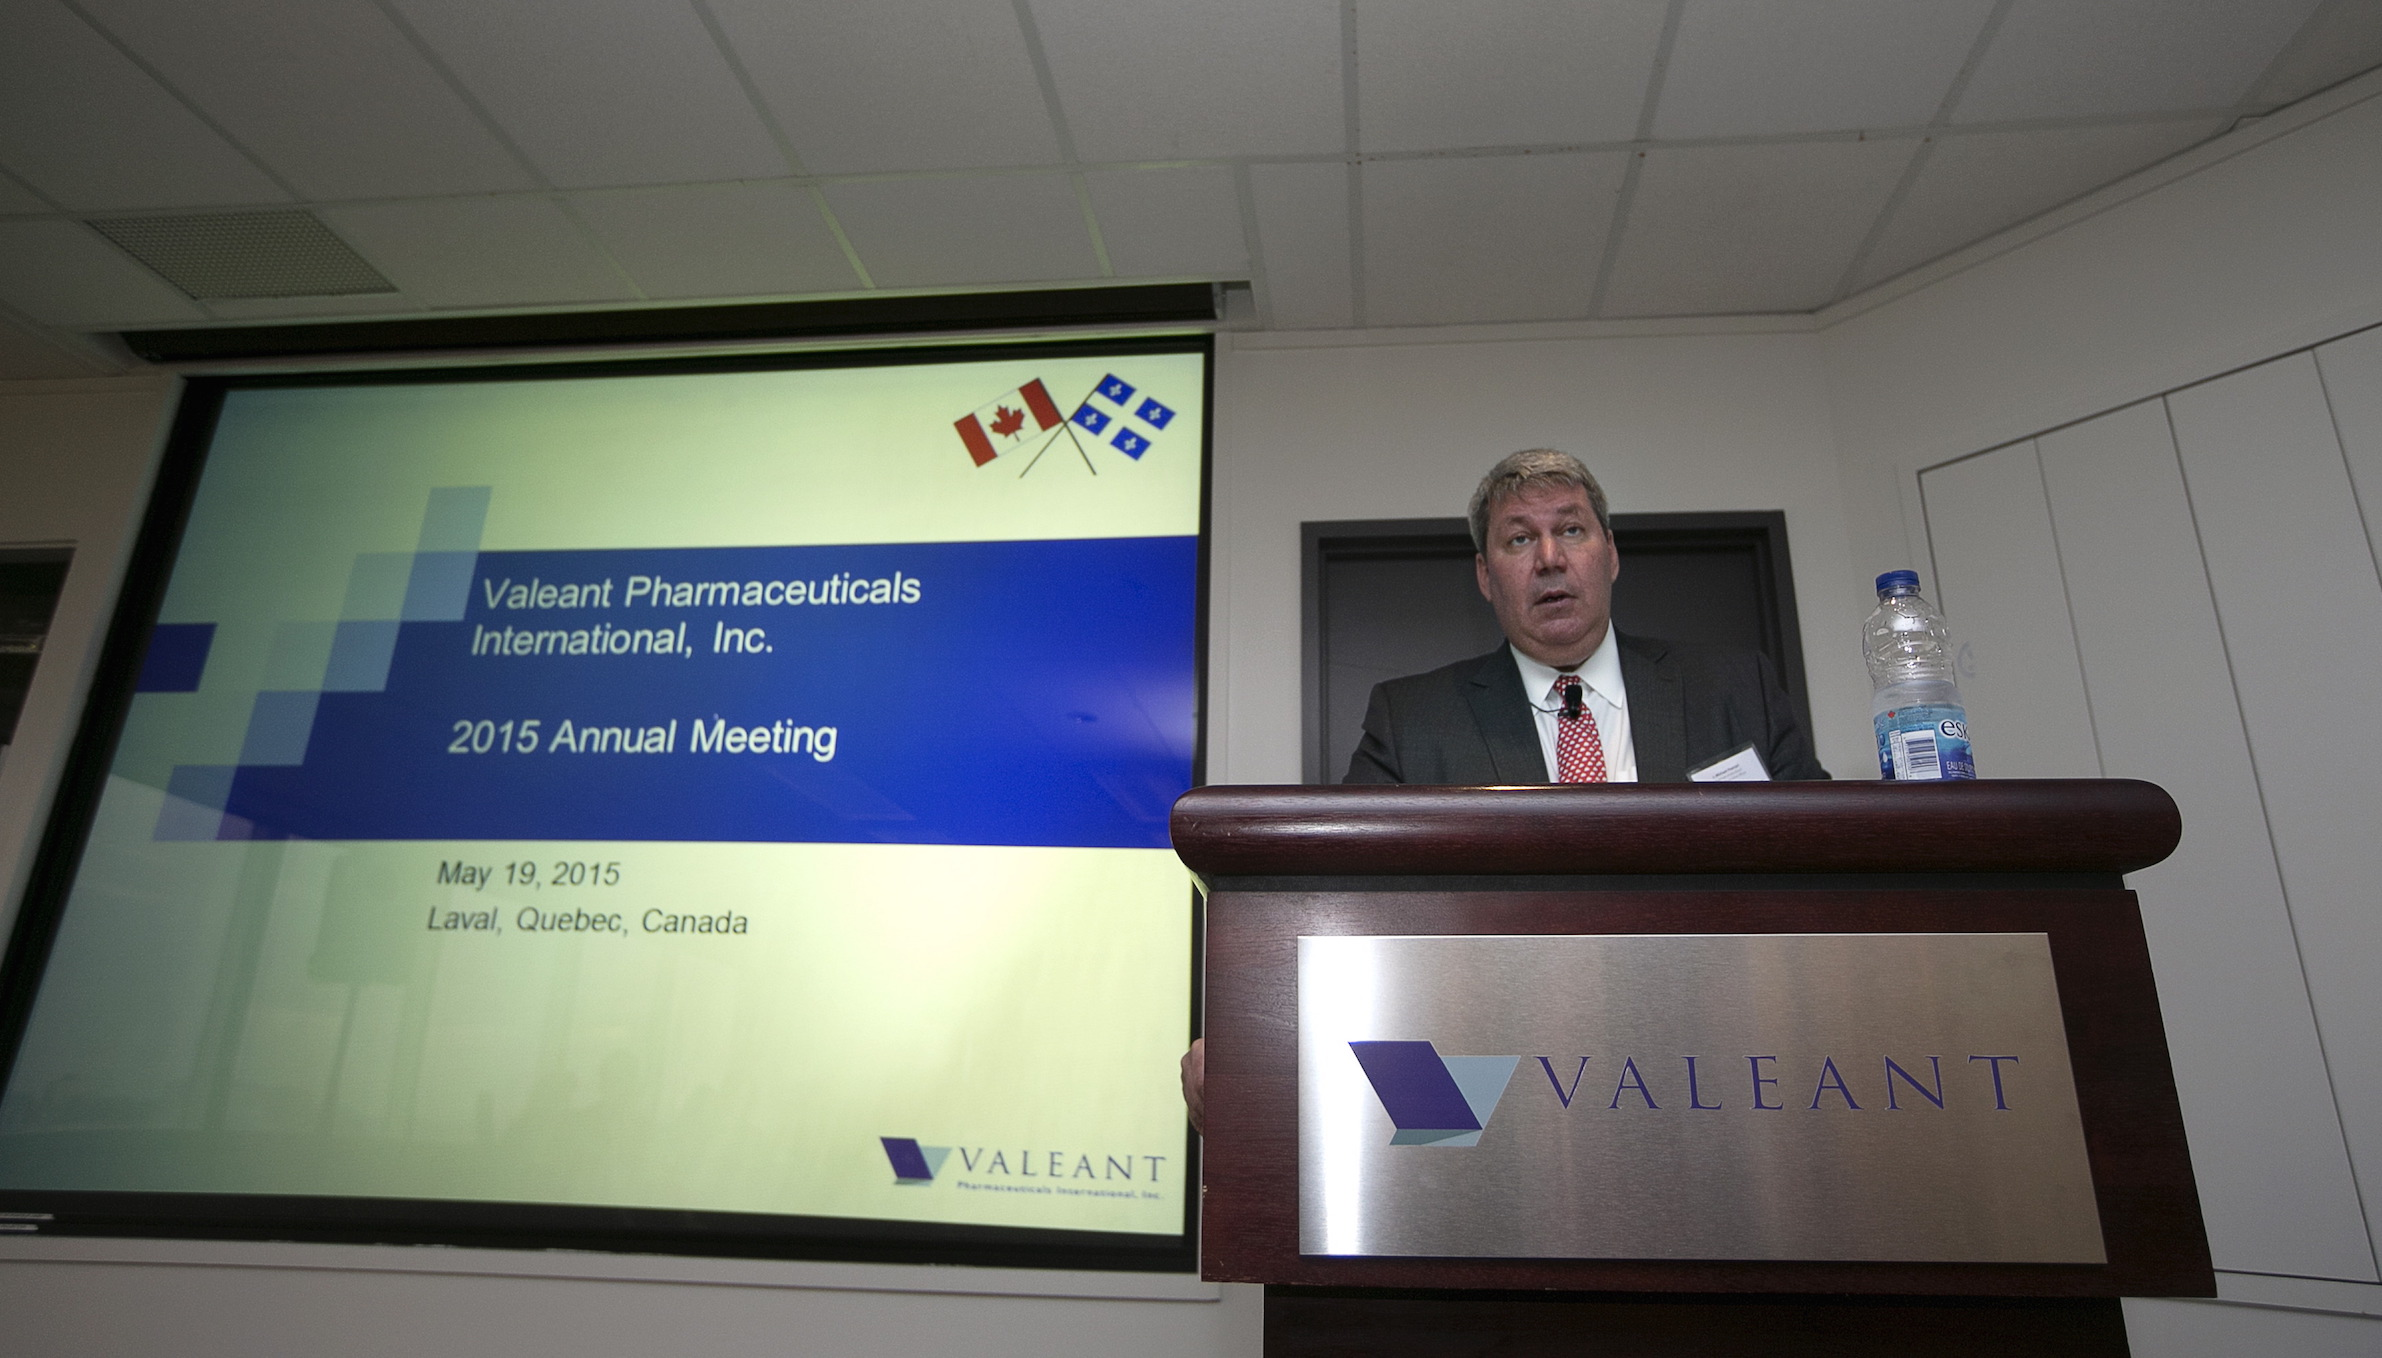 Michael Pearson, chairman of the board and chief executive officer of Valeant Pharmaceuticals International Inc., speaks during their annual general meeting in Laval, Quebec May 19, 2015.   REUTERS/Christinne Muschi  - RTX1DN6X